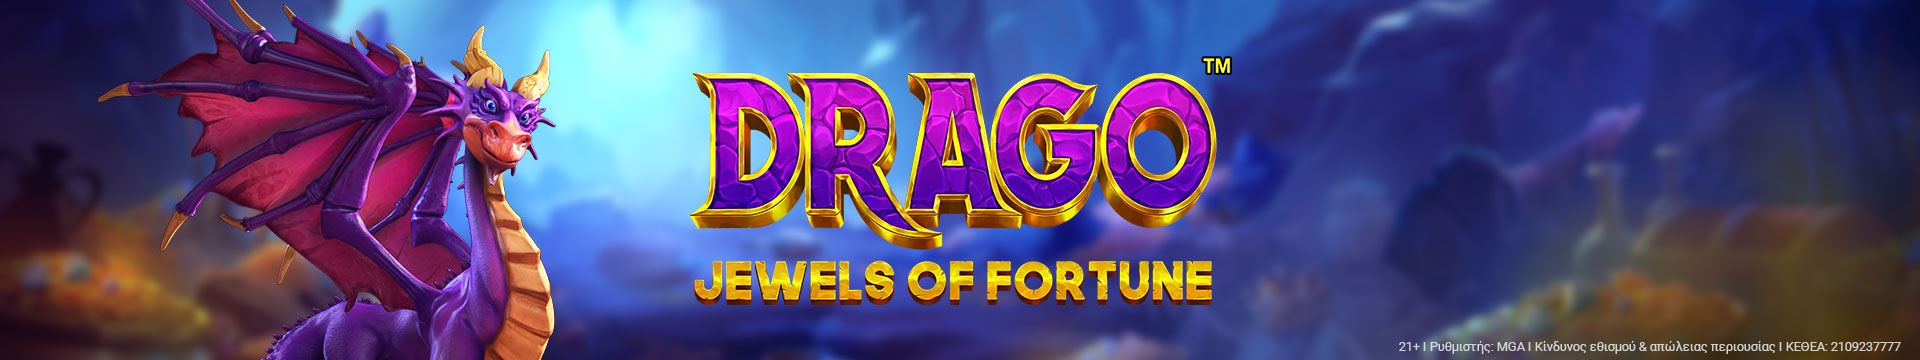 Drago_Jewels_of_fortune